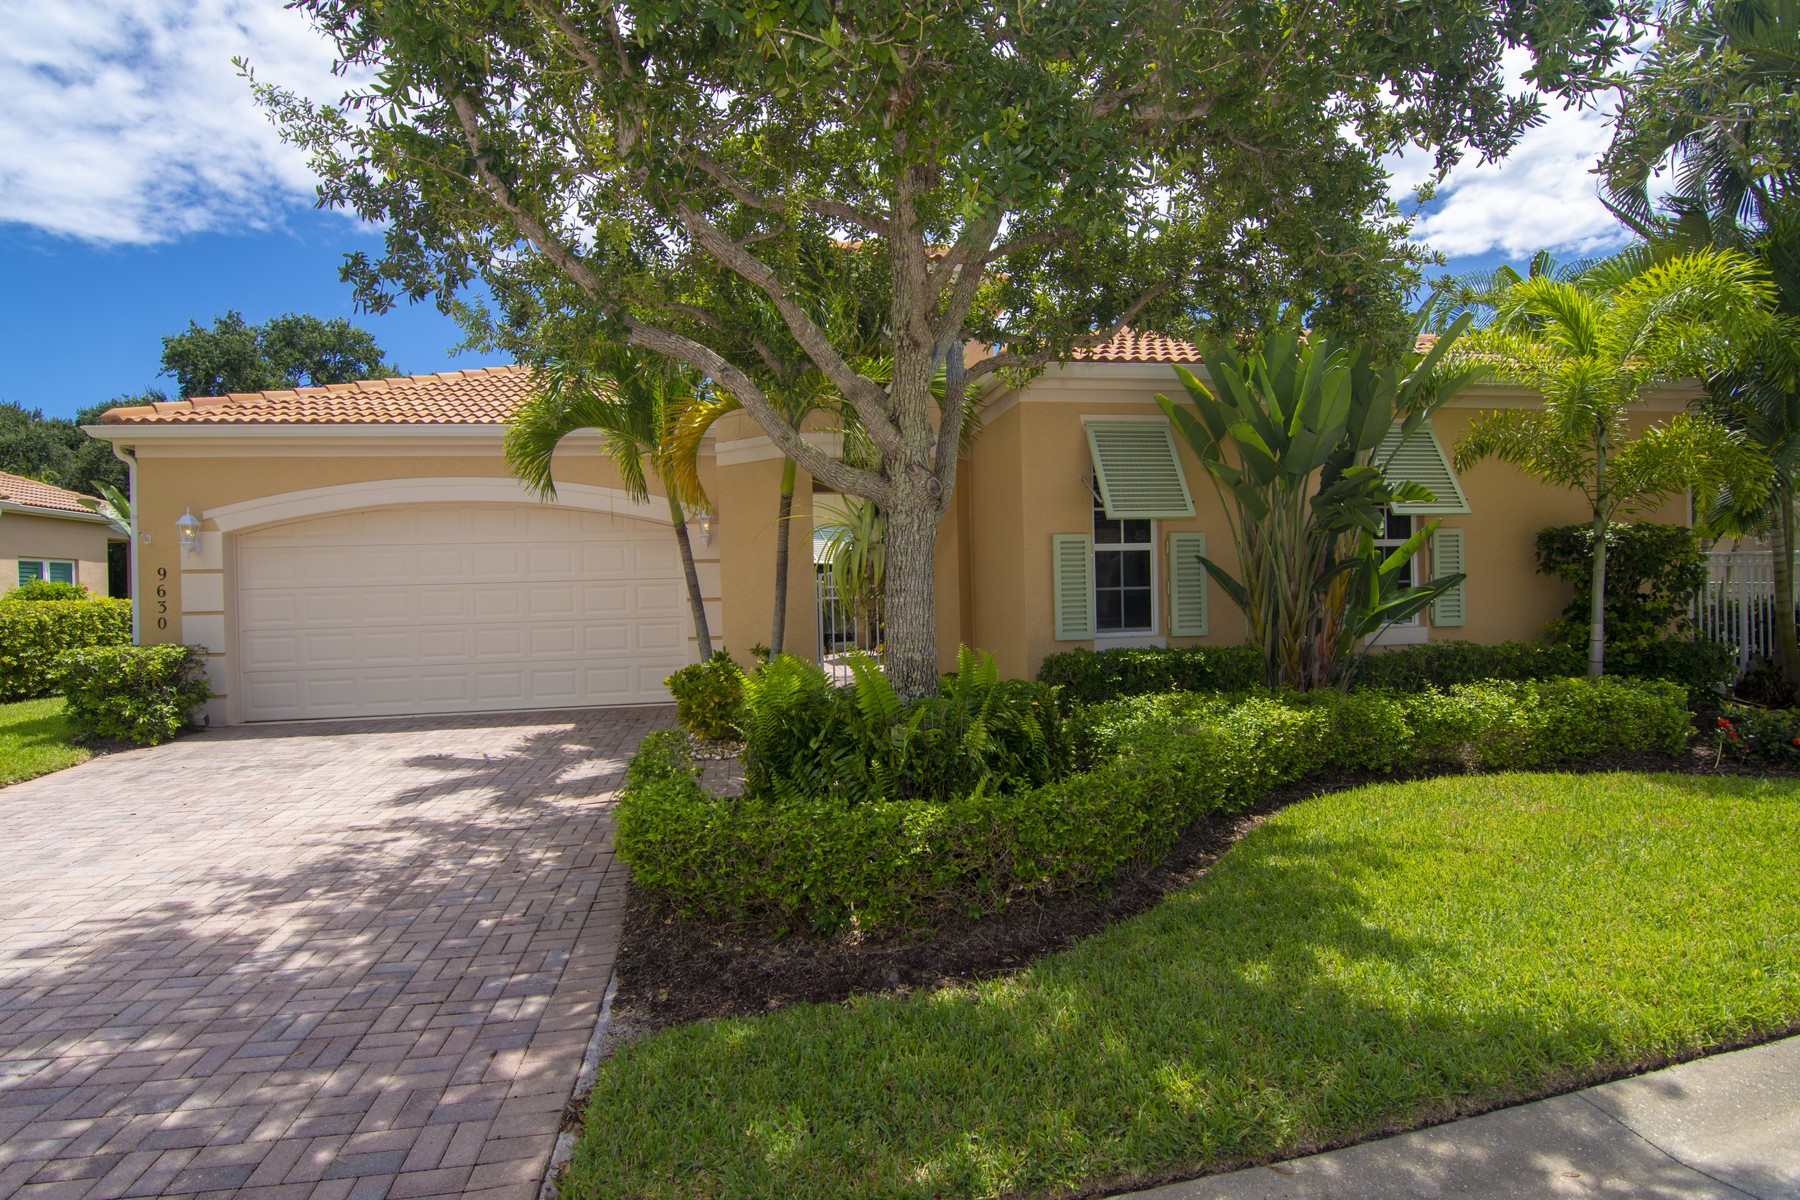 Single Family Homes for Sale at Courtyard Pool Home with Guest Cabana 9630 E Maiden Court Vero Beach, Florida 32963 United States